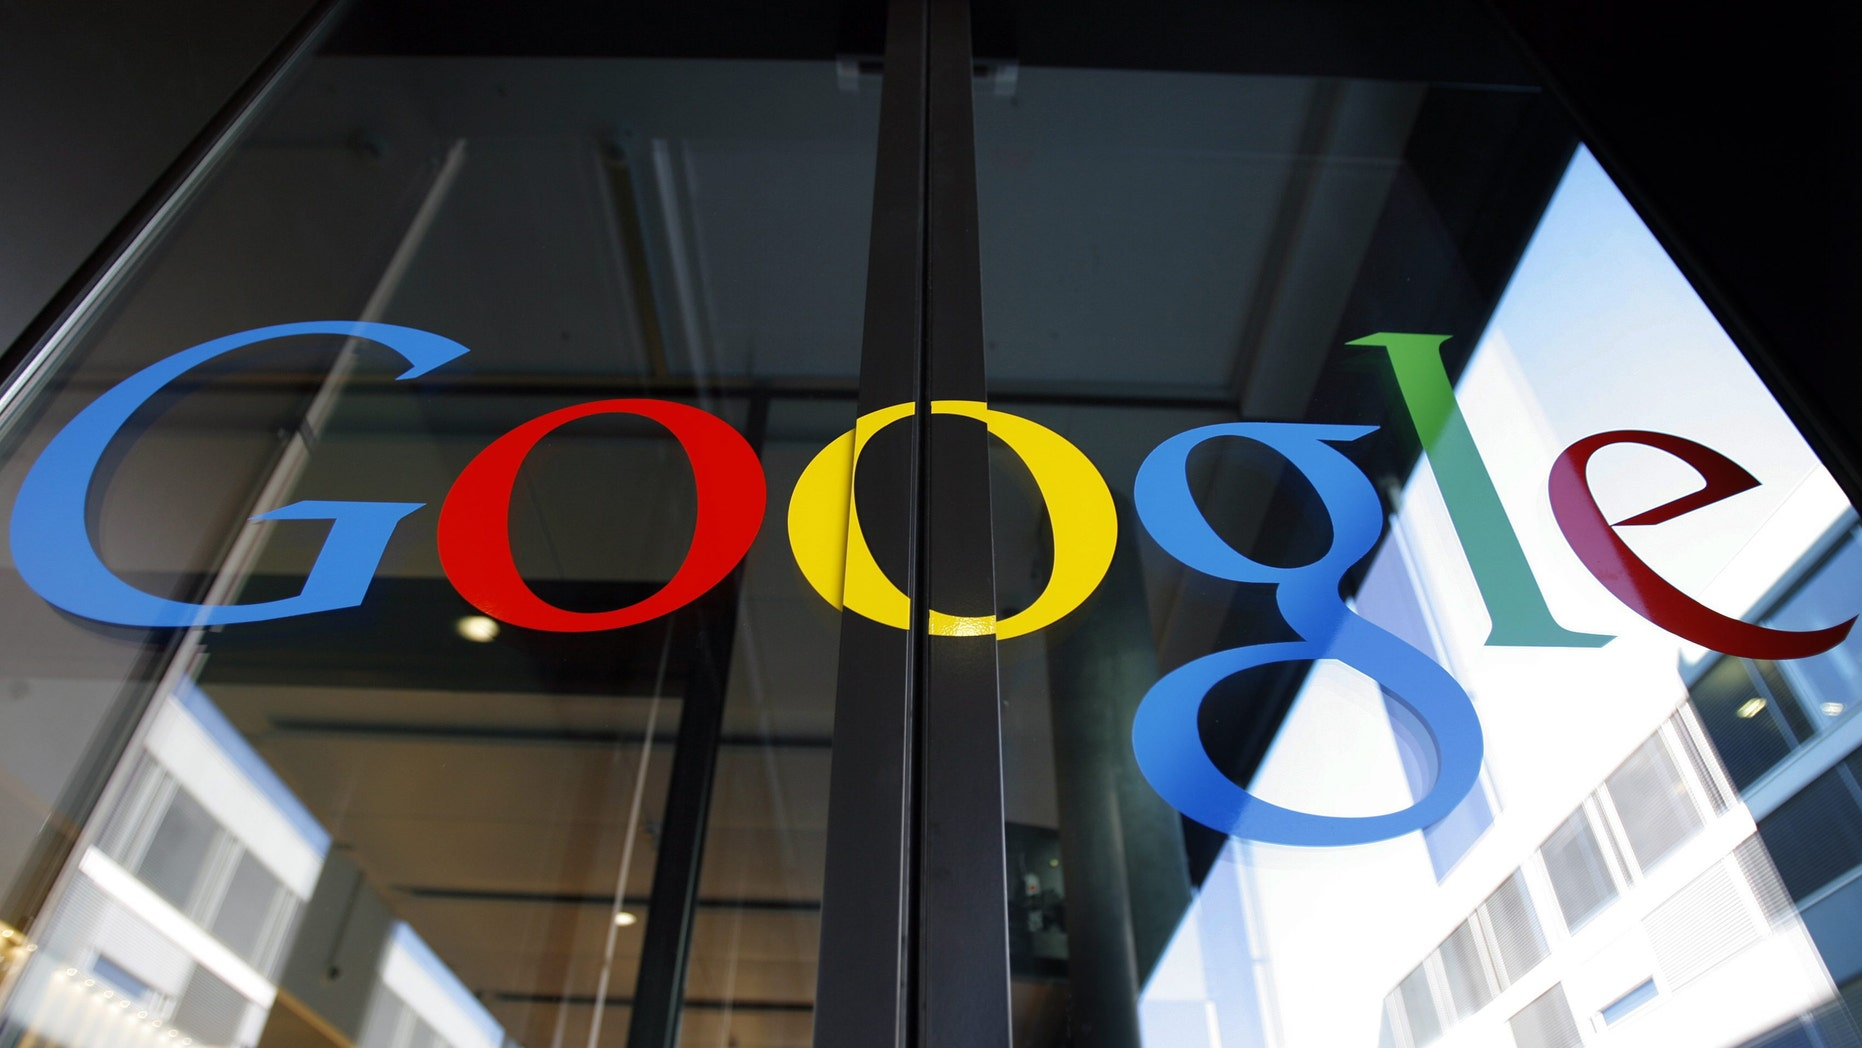 FILE - In this March 6, 2008 file photo, the Google logo is seen on the front door of the new Google Engineering center in Zurich, Switzerland. European regulators appeared on Tuesday, Oct. 1, 2013 to be nearing a settlement with Google in their probe over whether the Internet search and advertising giant is unfairly stifling competition. (AP Photo/Keystone, Walter Bier, File)